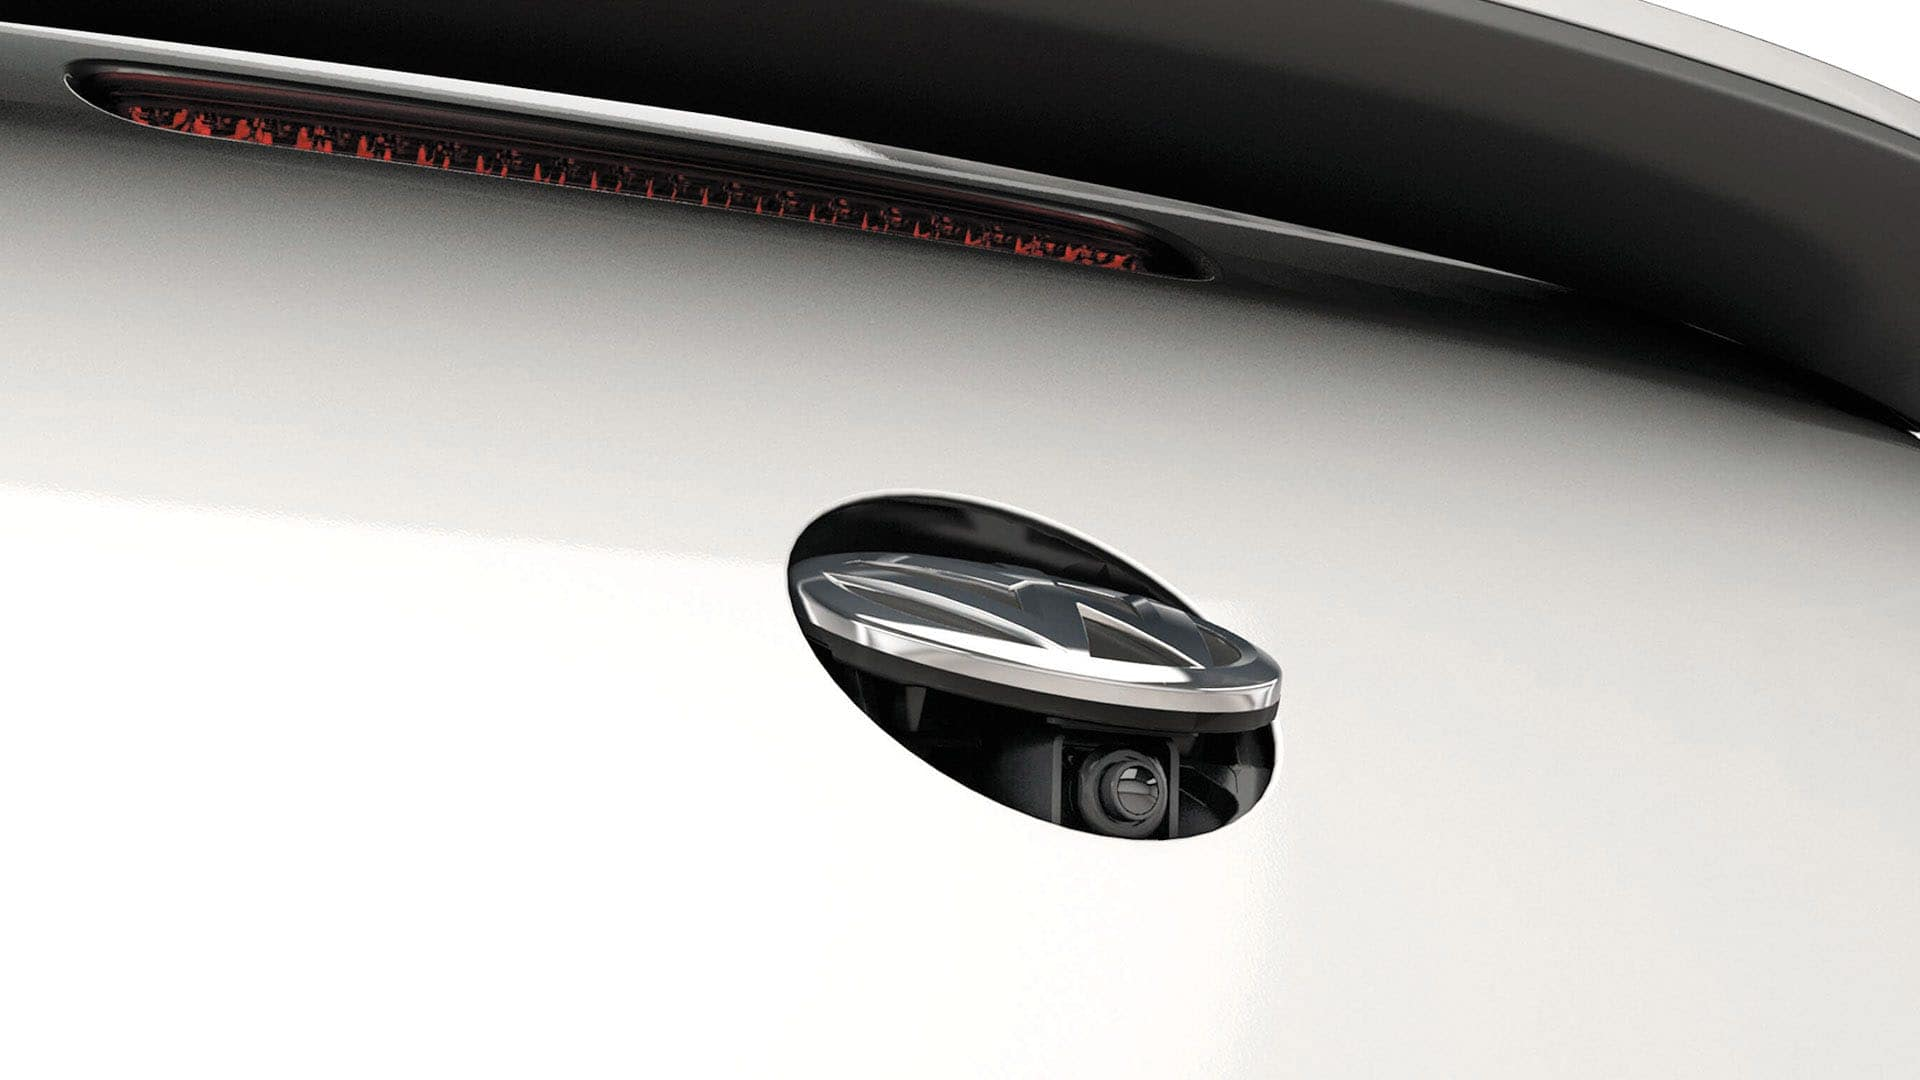 2019 VW Beetle rearview camera